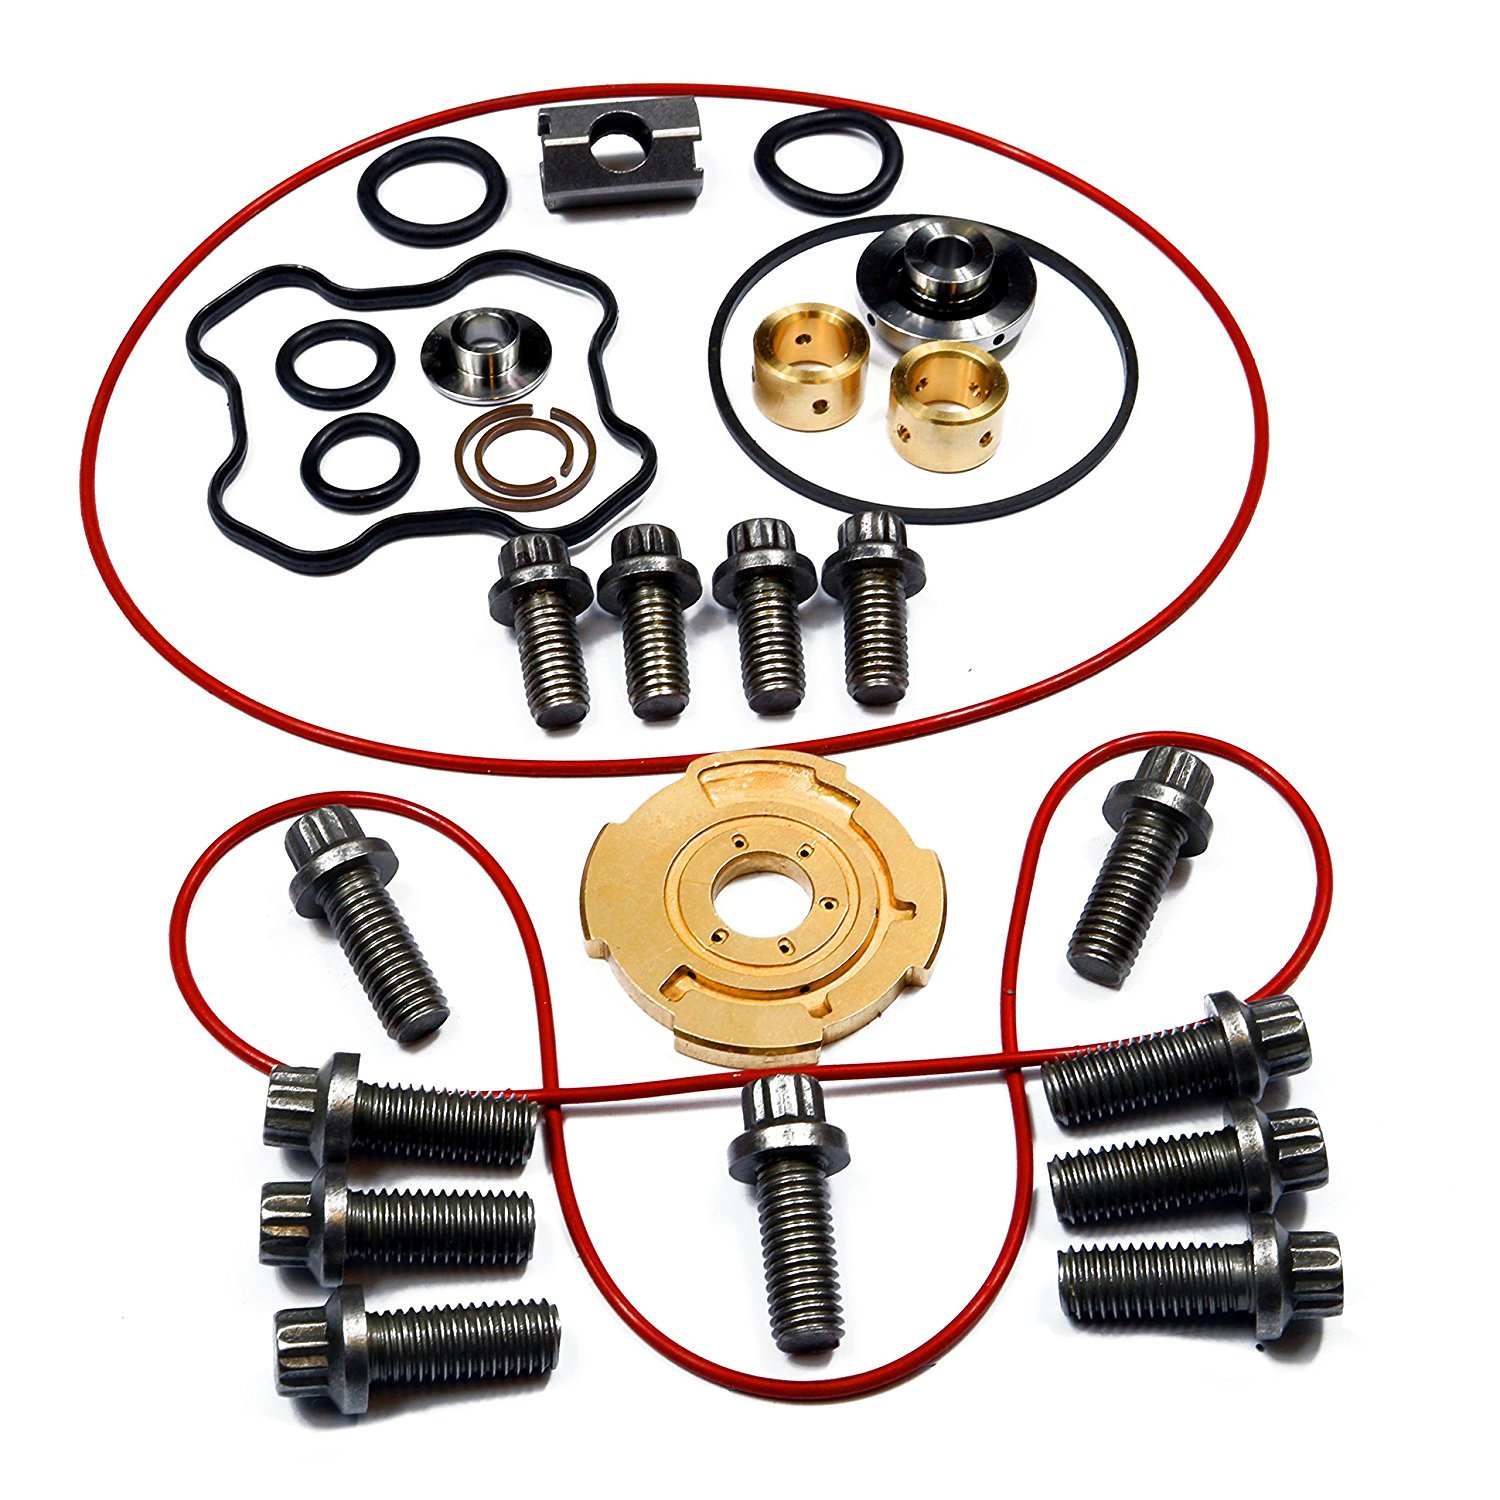 Installation Instructions Included 1994-2003 Ford 7.3L Powerstroke Turbo Upgraded Rebuild Kit 360/° Thrust for Garrett GTP38 /& TP38